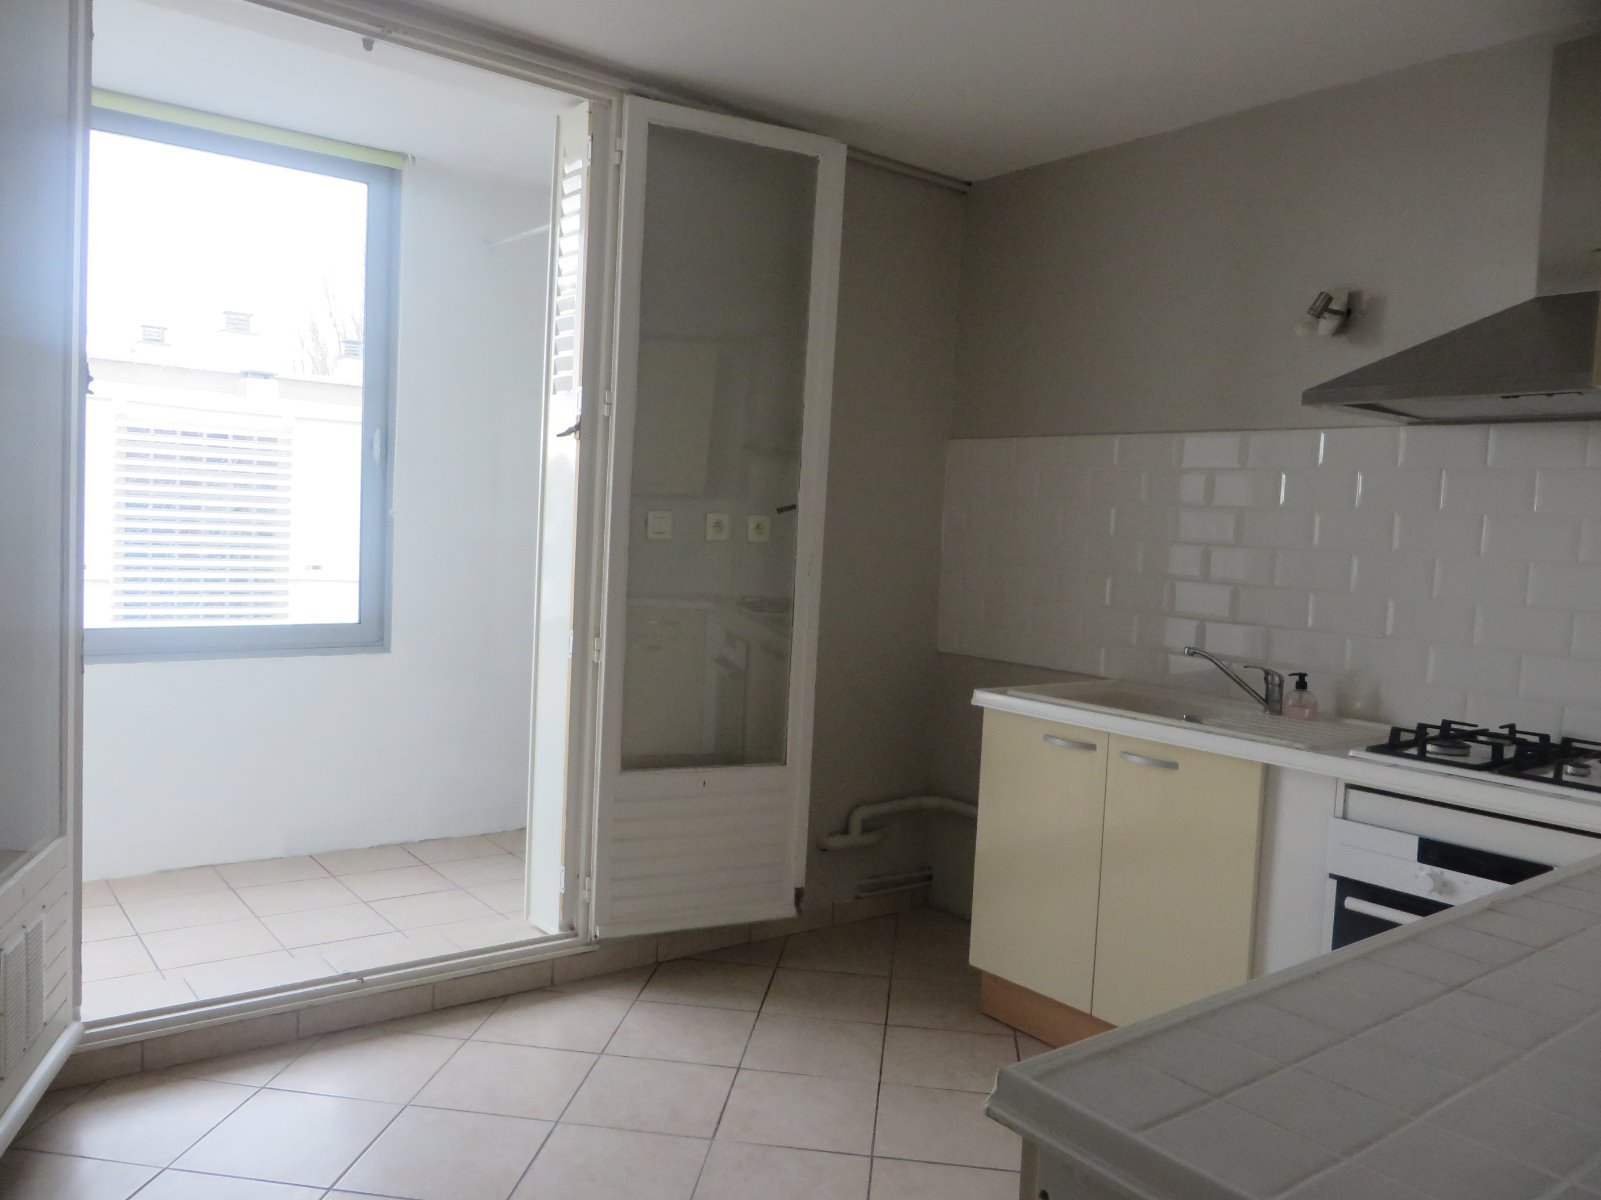 VENTE - 2061 - APPARTEMENT LUMINEUX - 2 Chambres